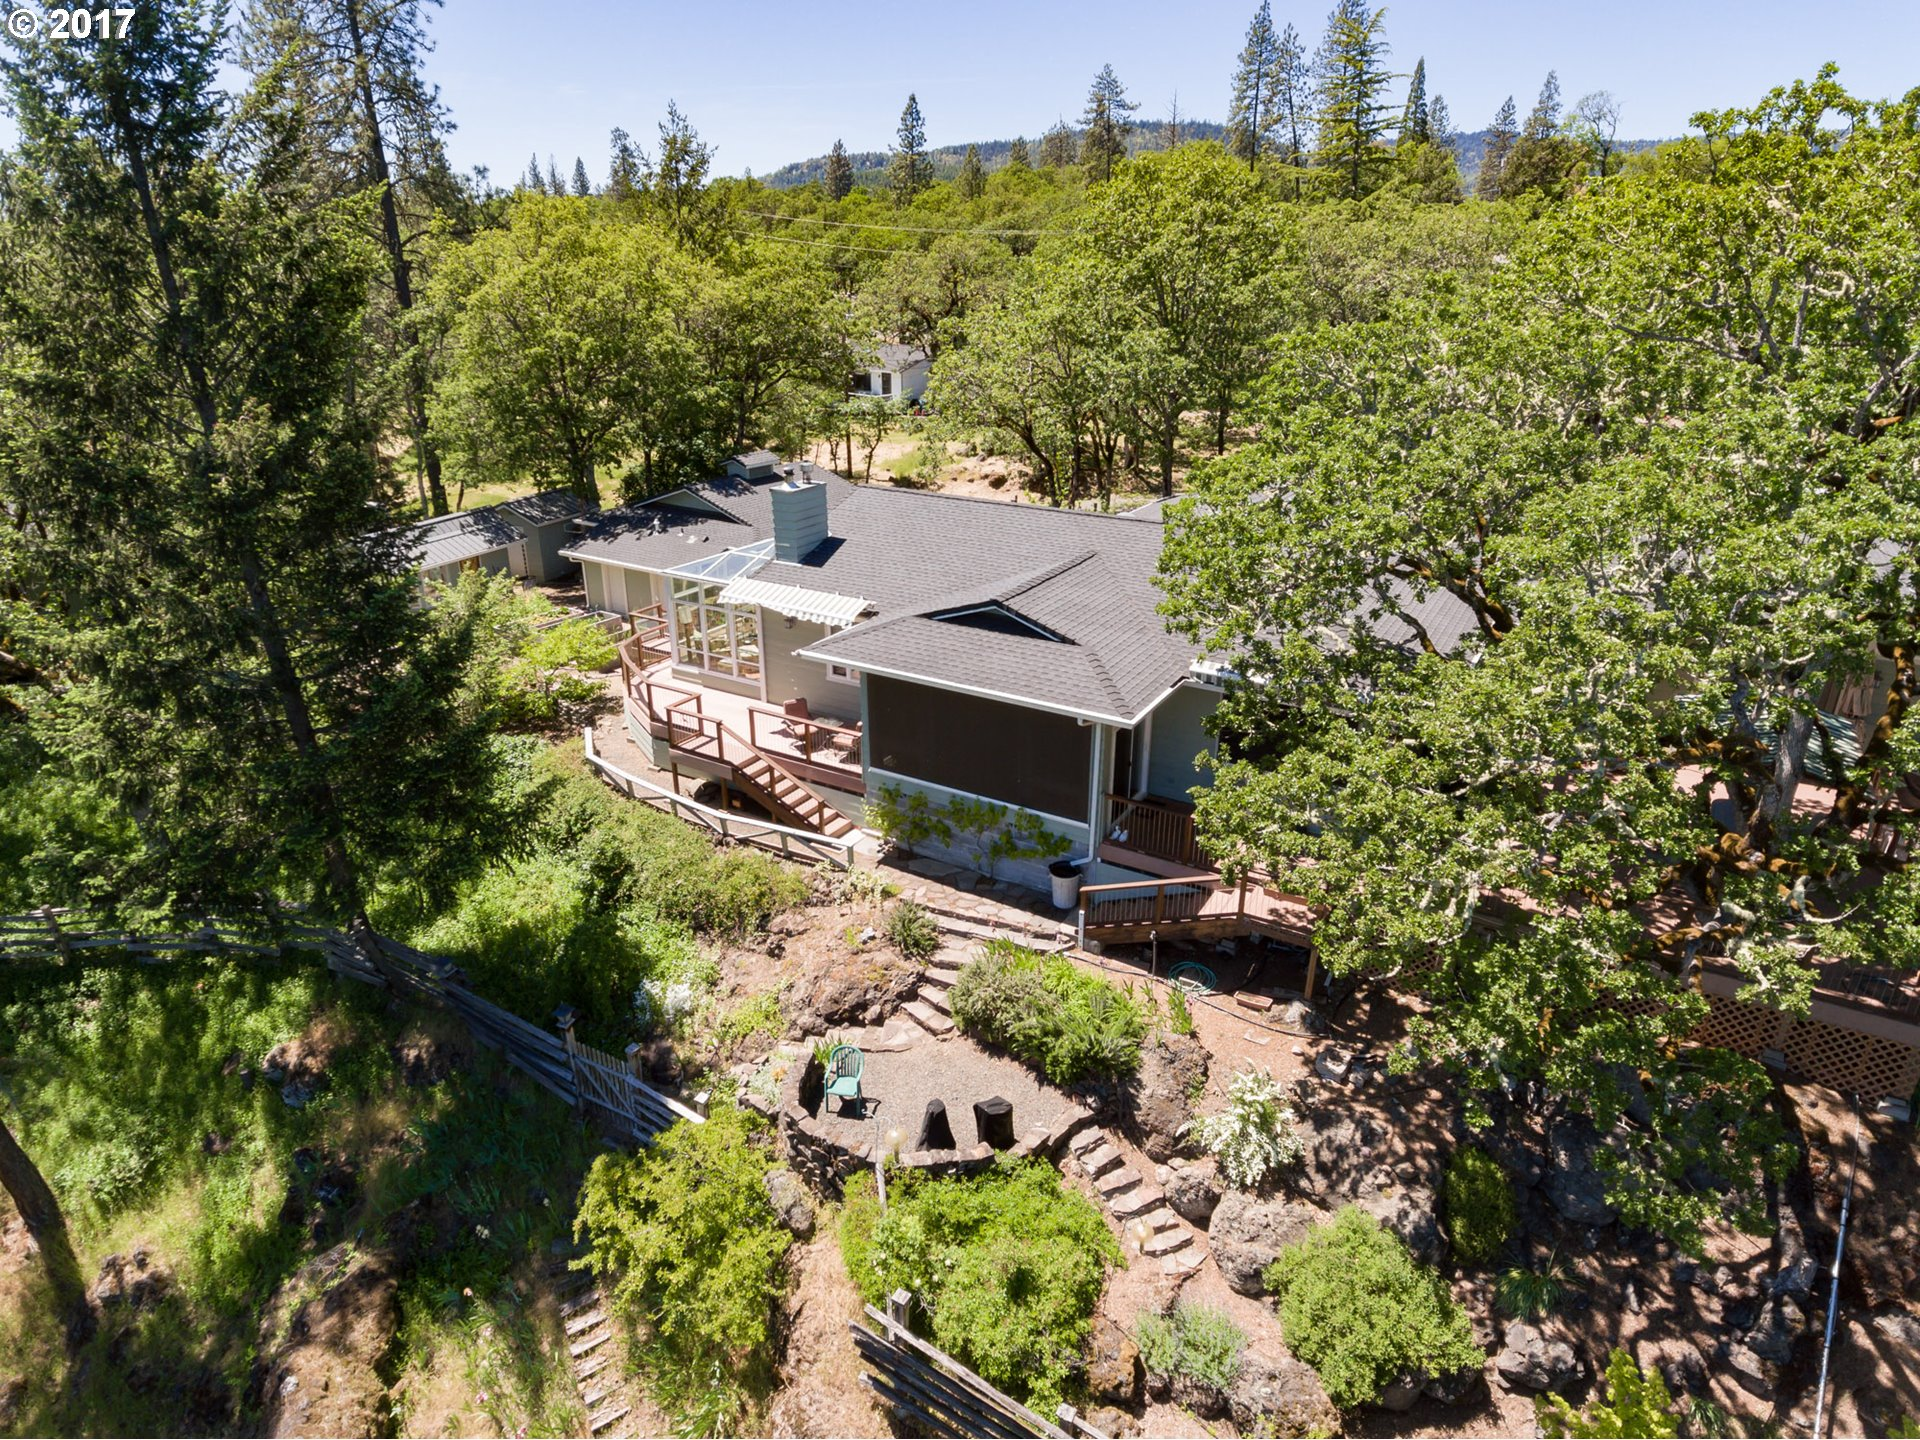 27 JAMES PL, Shady Cove, OR 97539